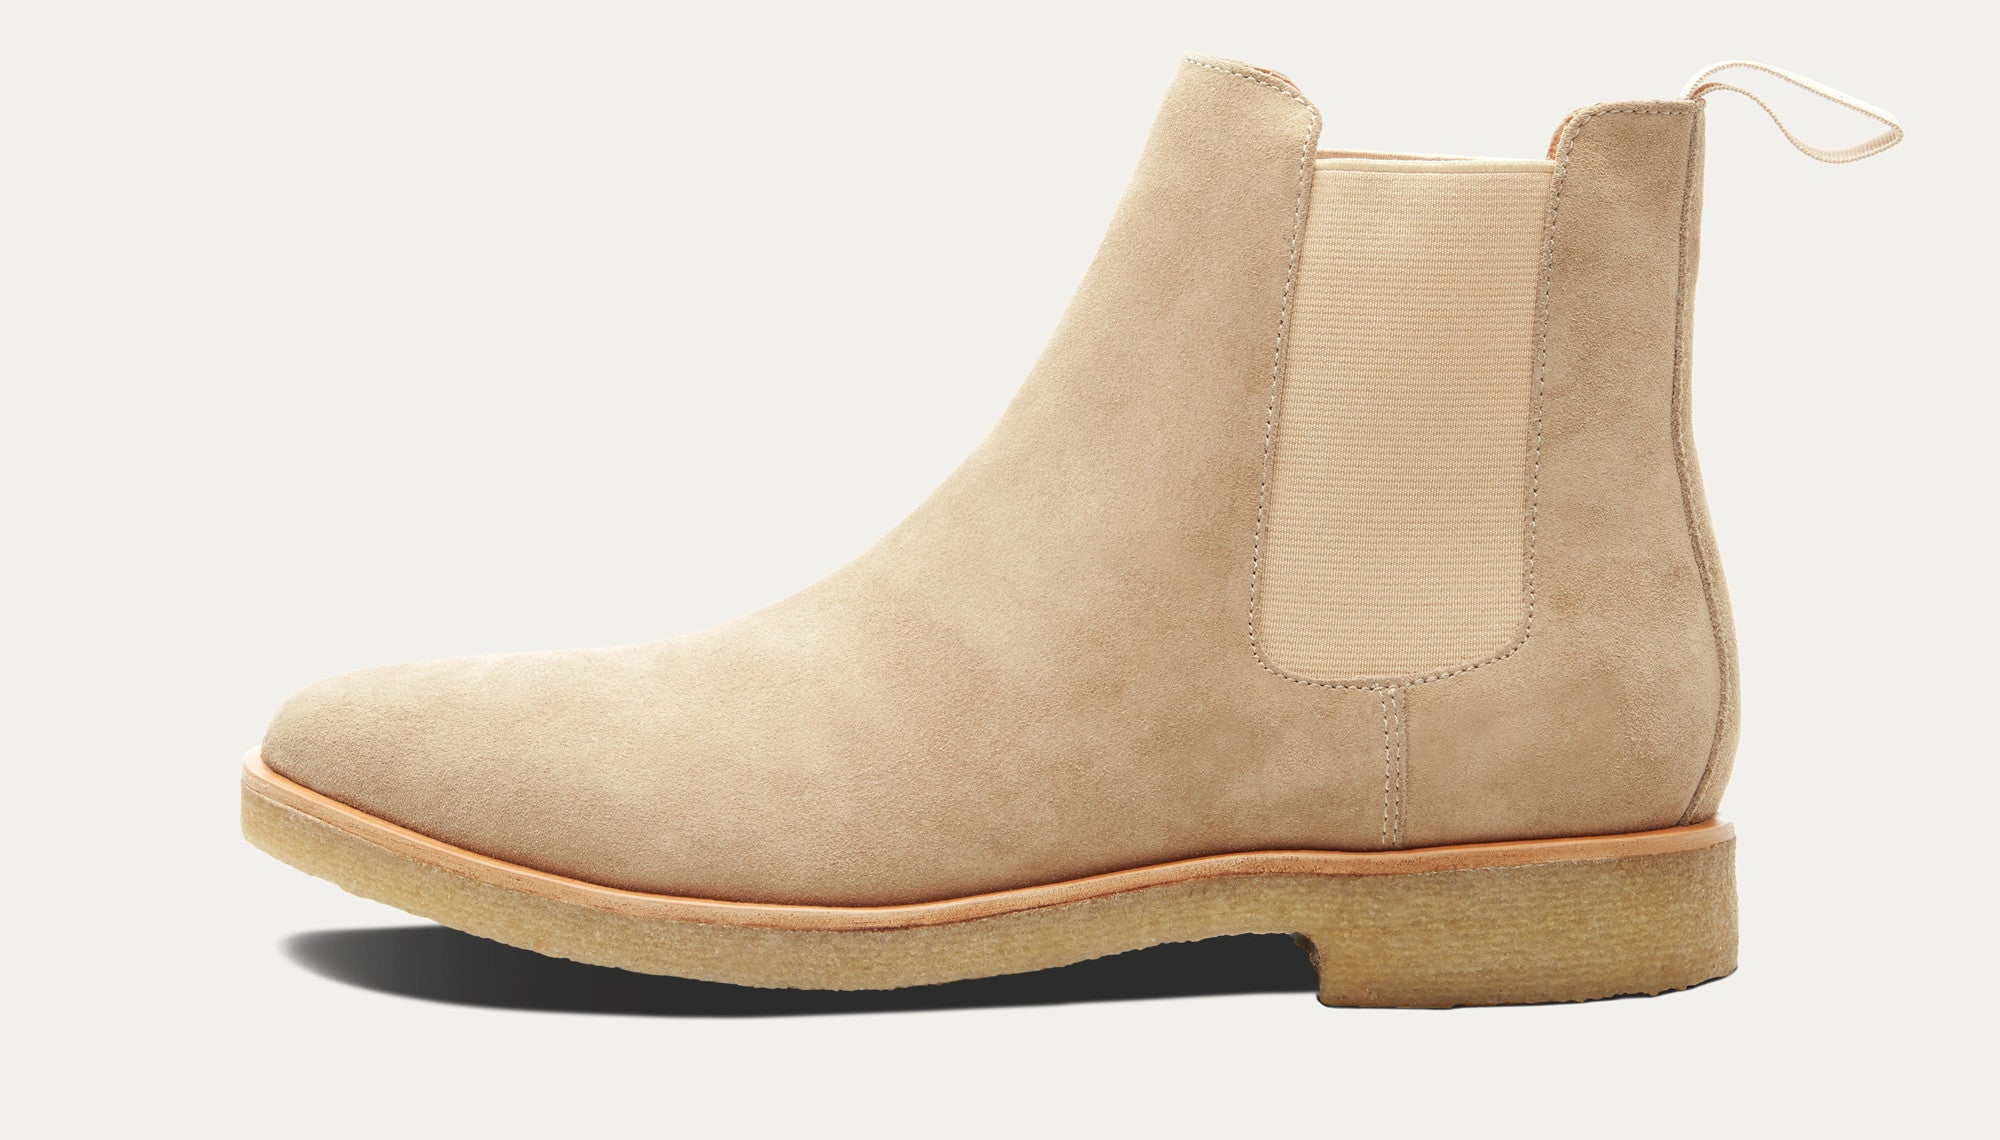 Houston Suede Chelsea Boot Houston Suede Chelsea Boot ...